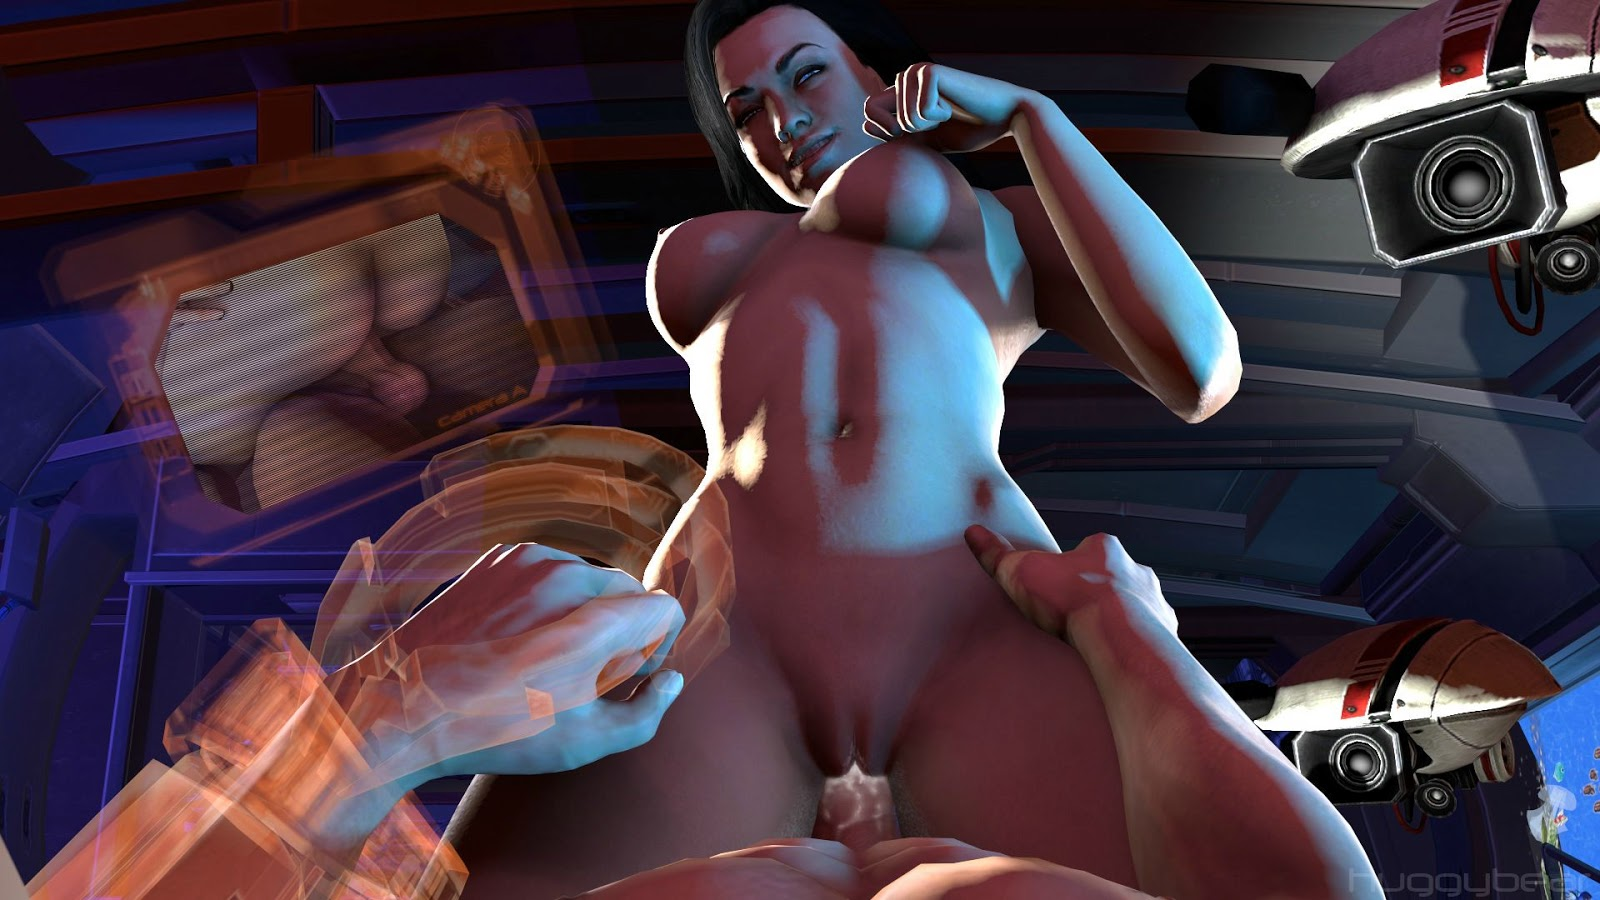 Mass effect xxx porno sexy photos